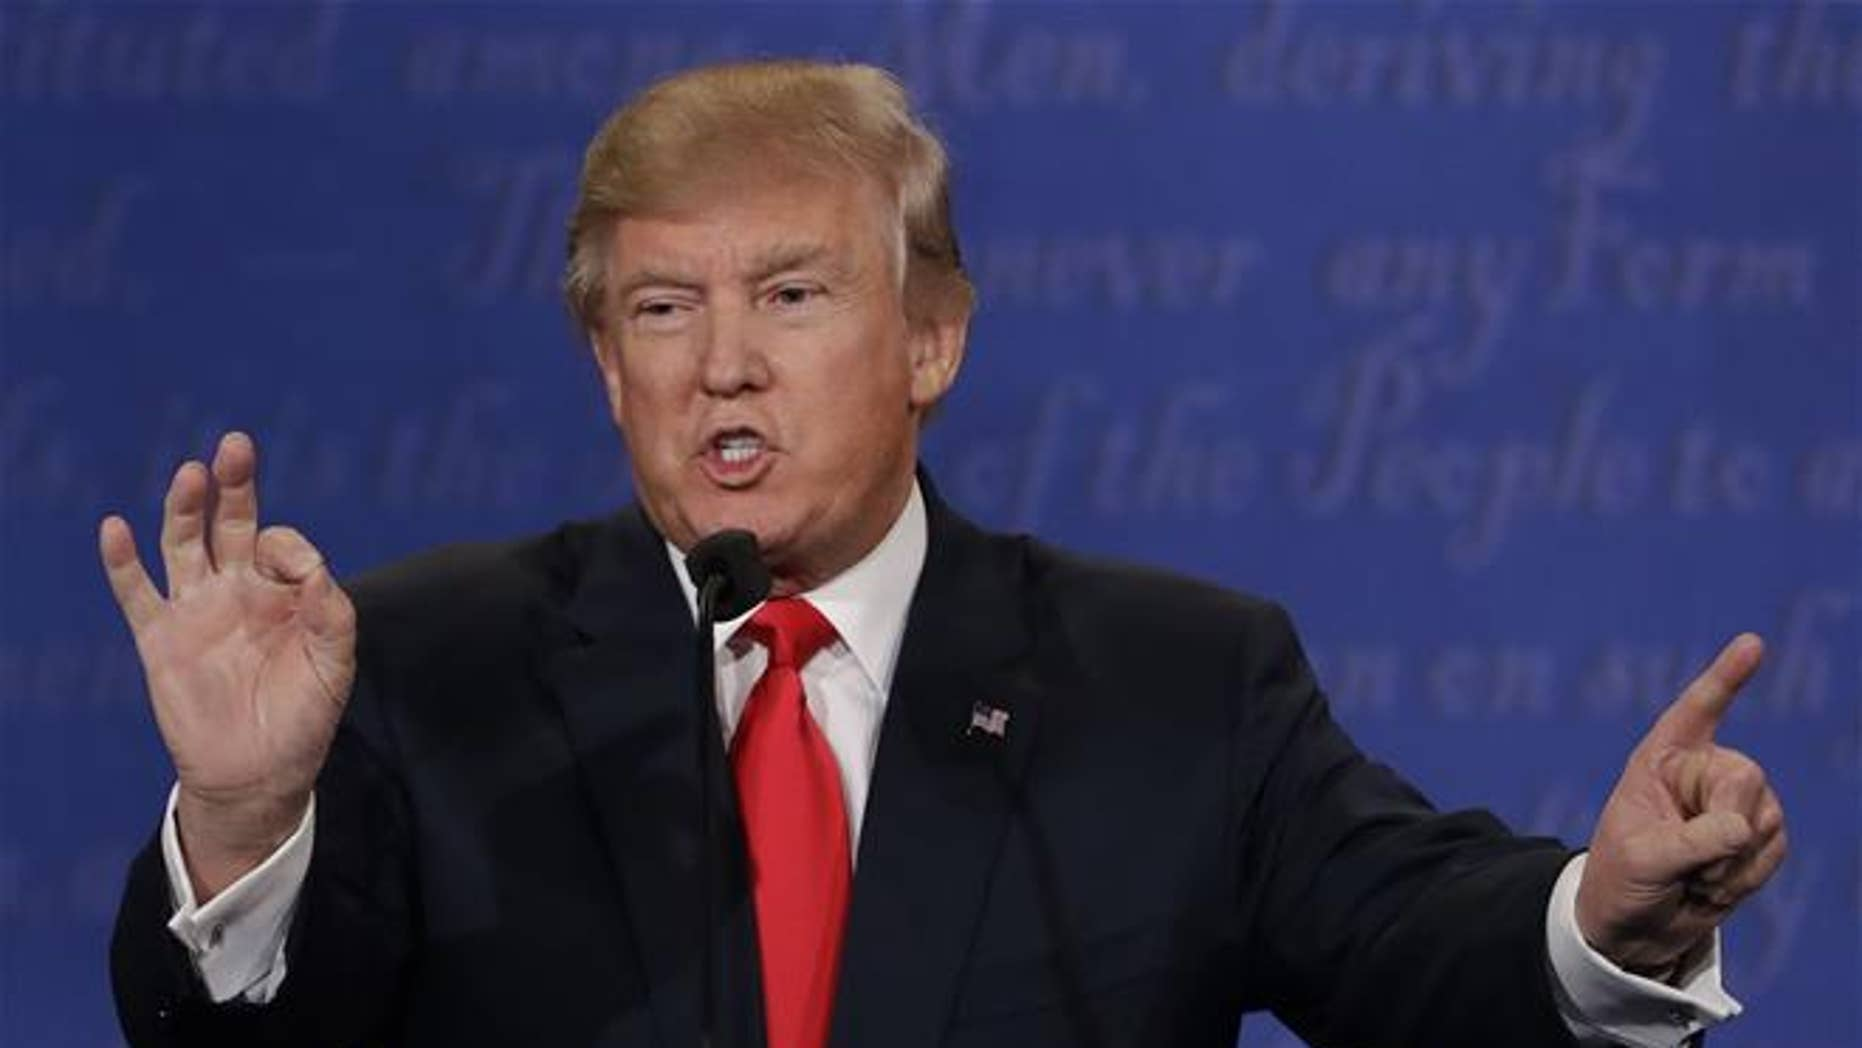 In this Oct. 19, 2016 file photo, Republican presidential nominee Donald Trump speaks during the third presidential debate with Democratic presidential nominee Hillary Clinton at UNLV in Las Vegas. Trump last spring pledged that he would act perfectly presidential when the time was right.